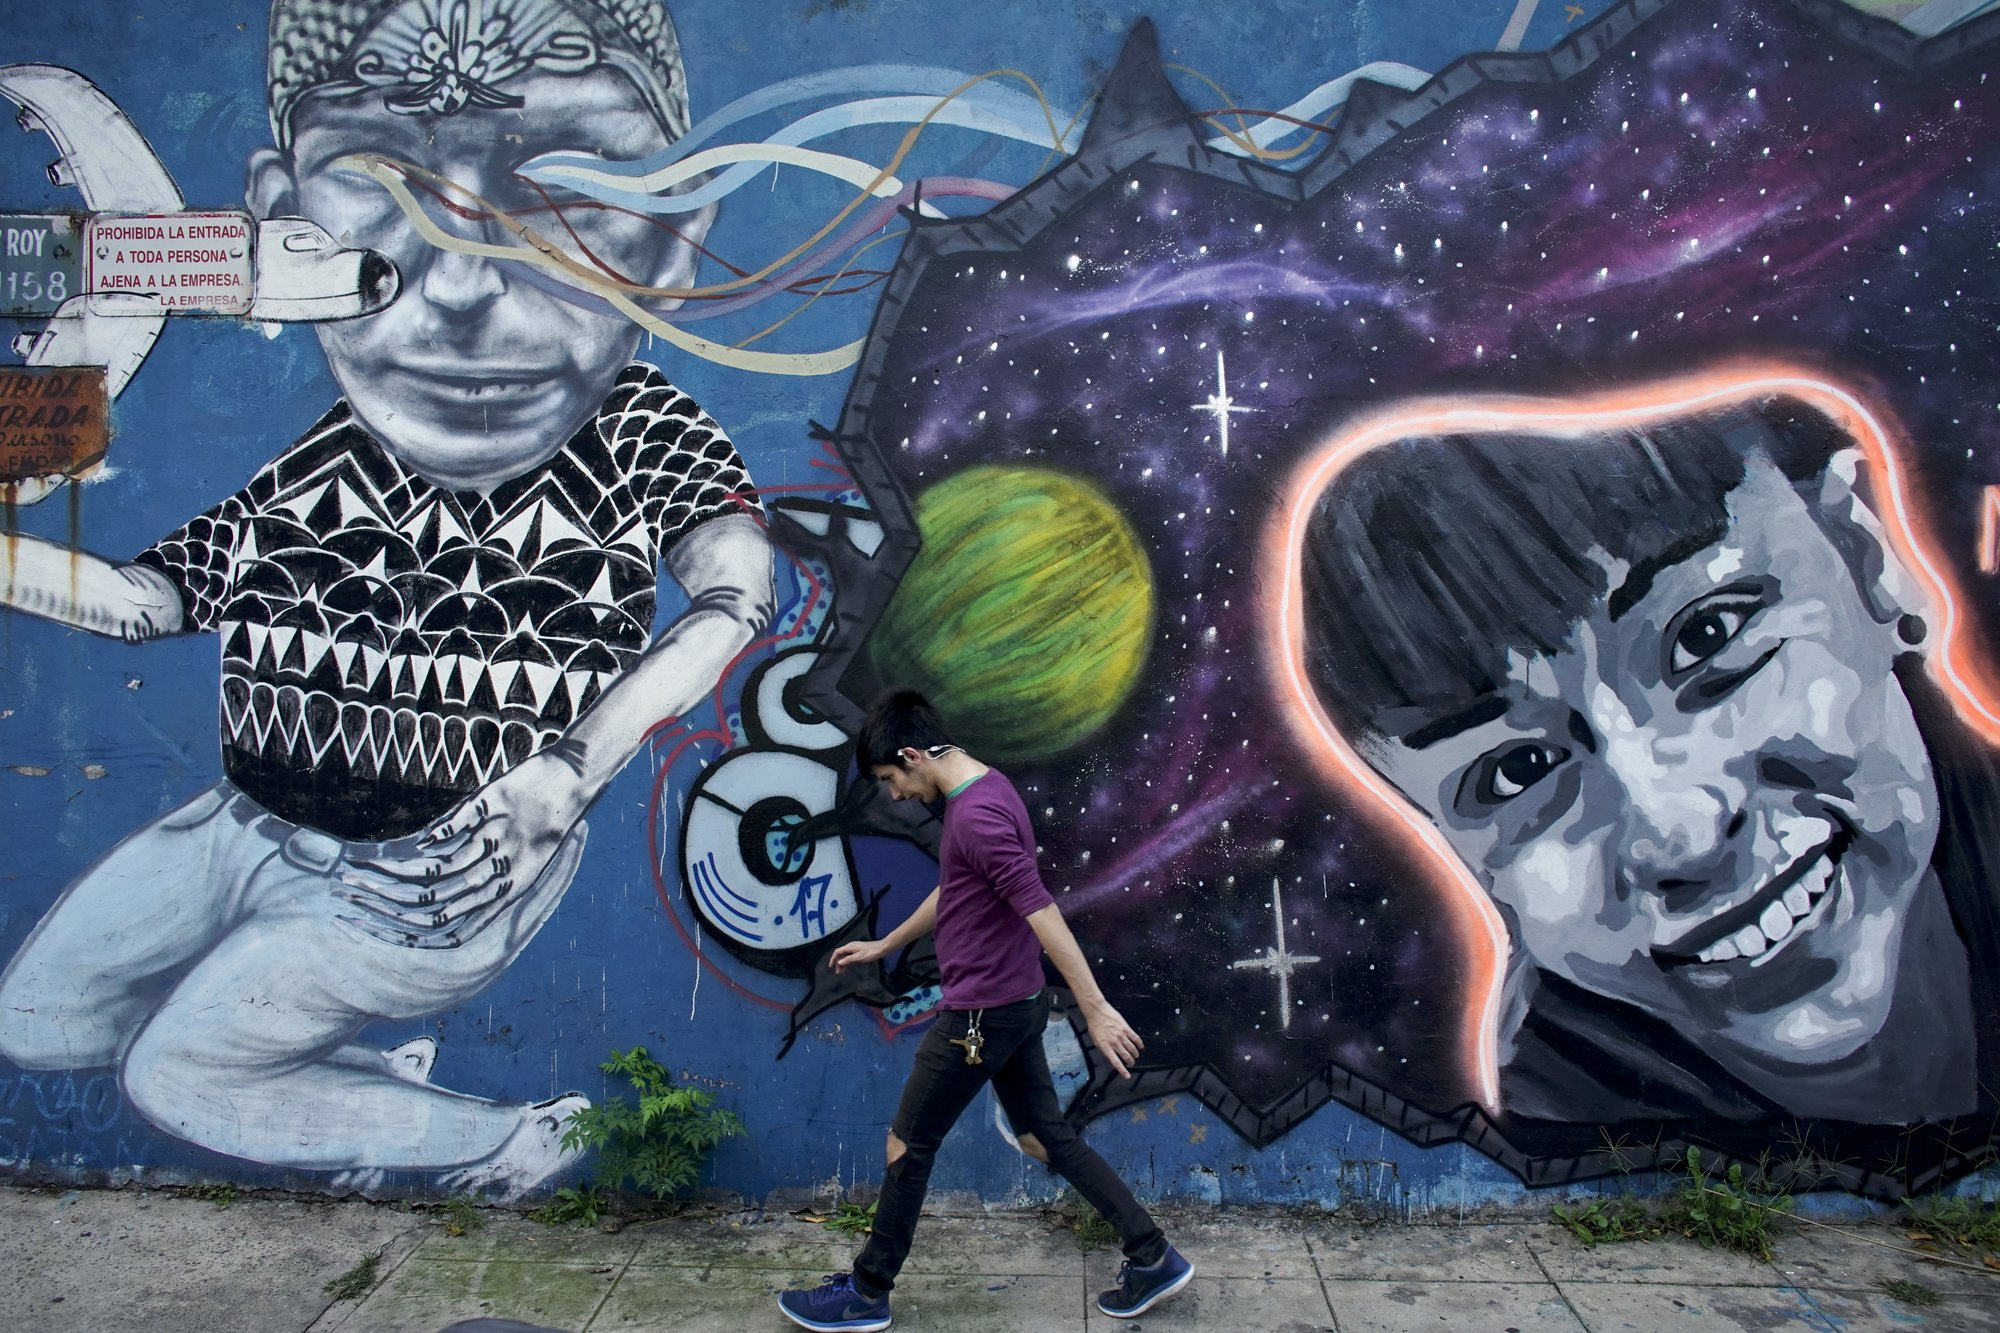 Argentines Use Murals To Search For Missing Children